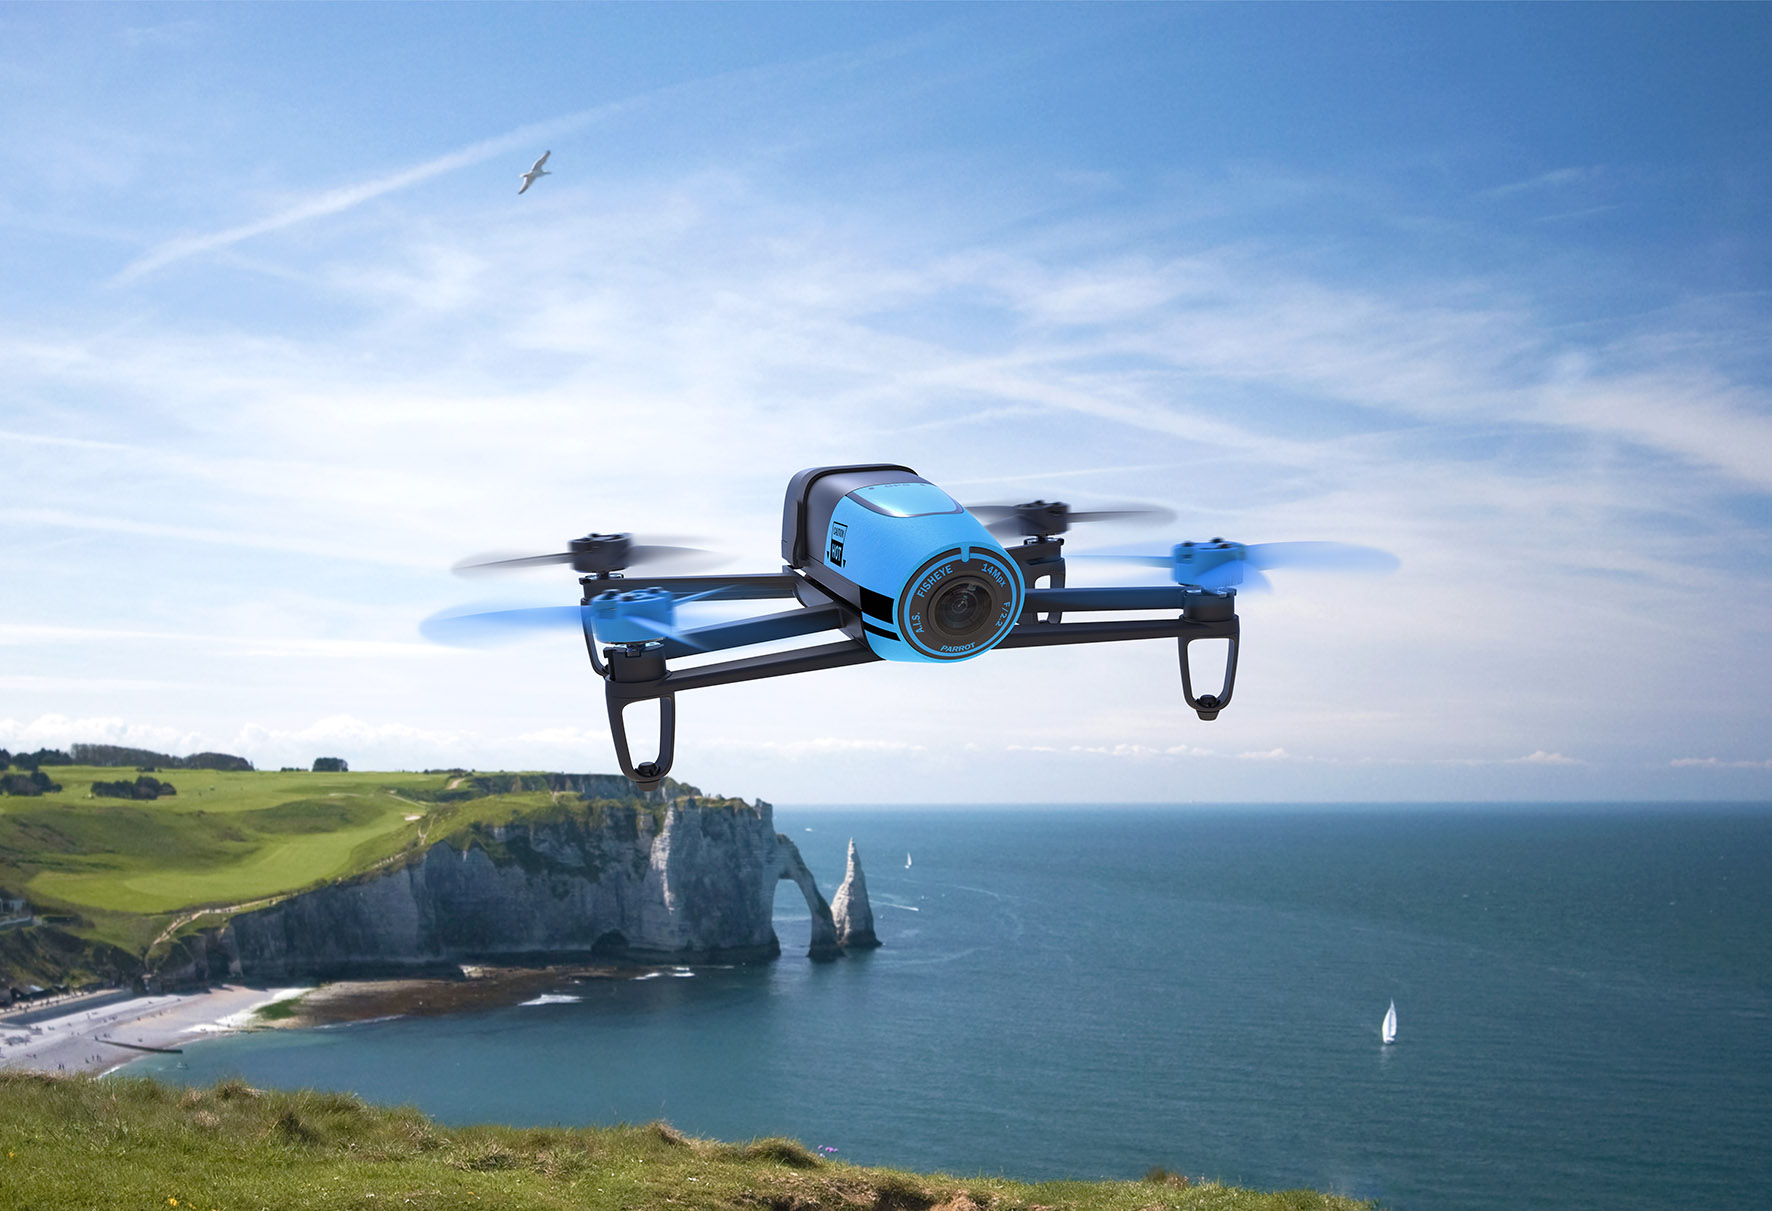 Best Parrot Drones to buy